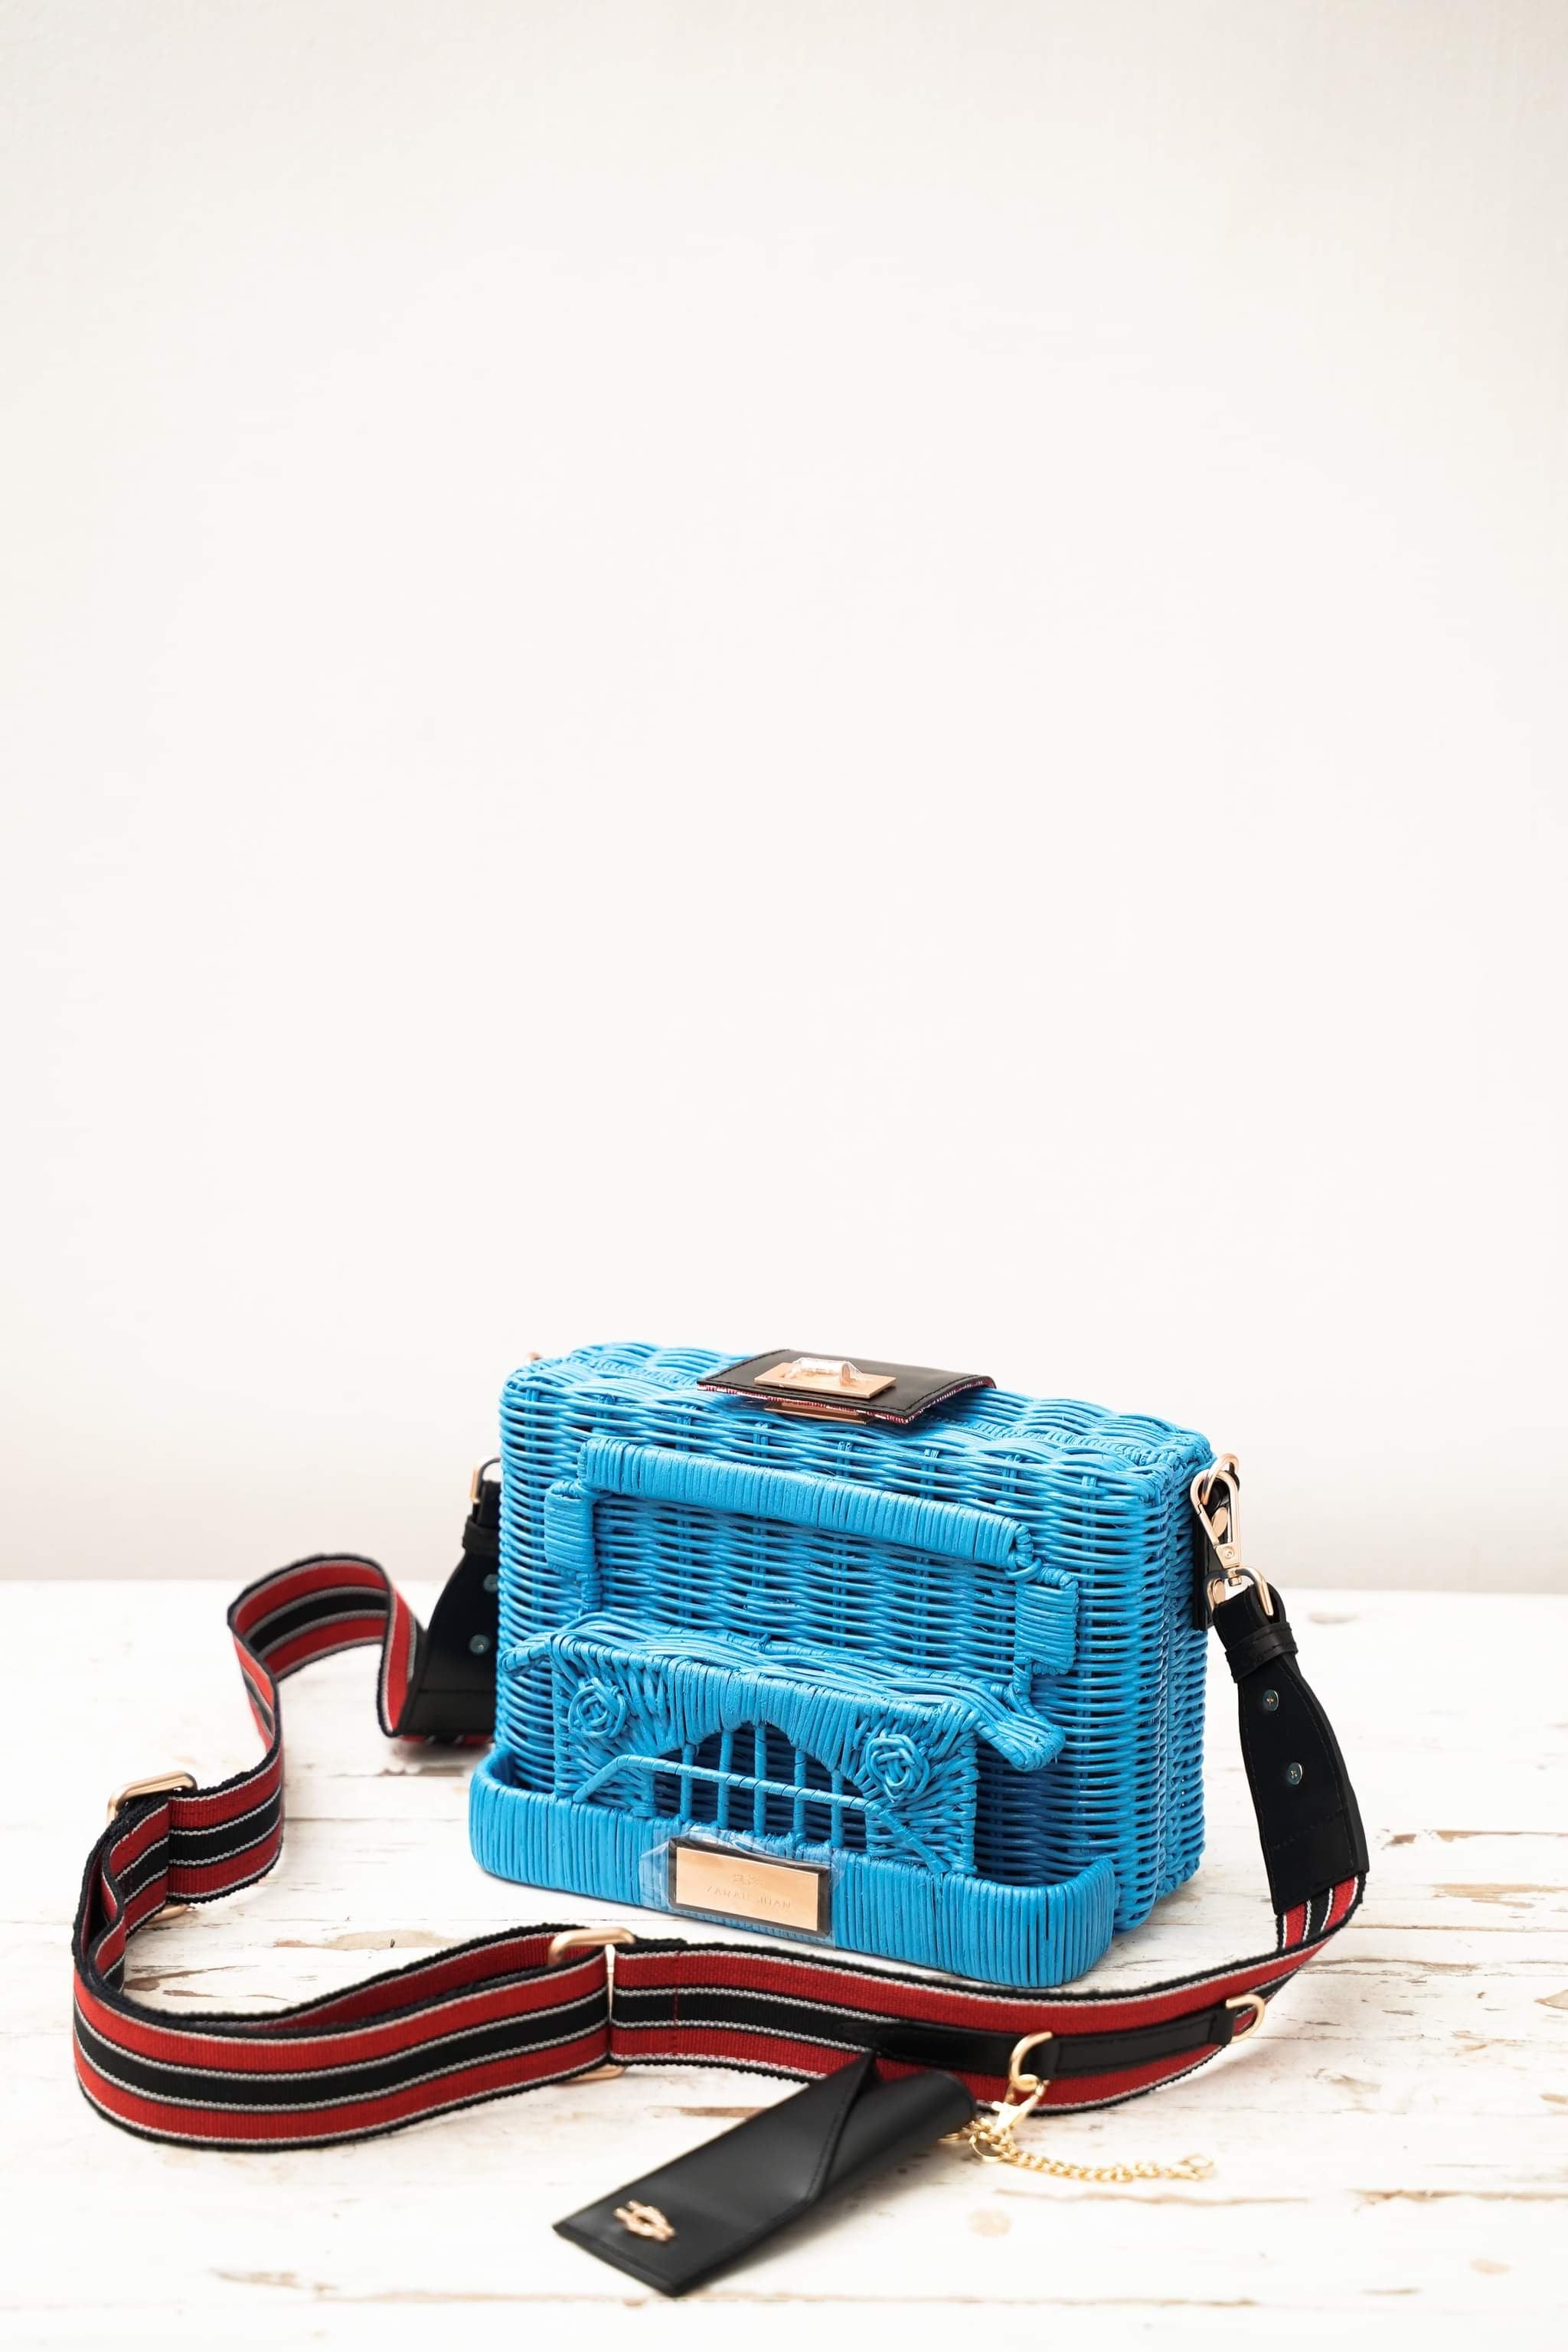 PUJ Clutch Bag in Bughaw (Blue)